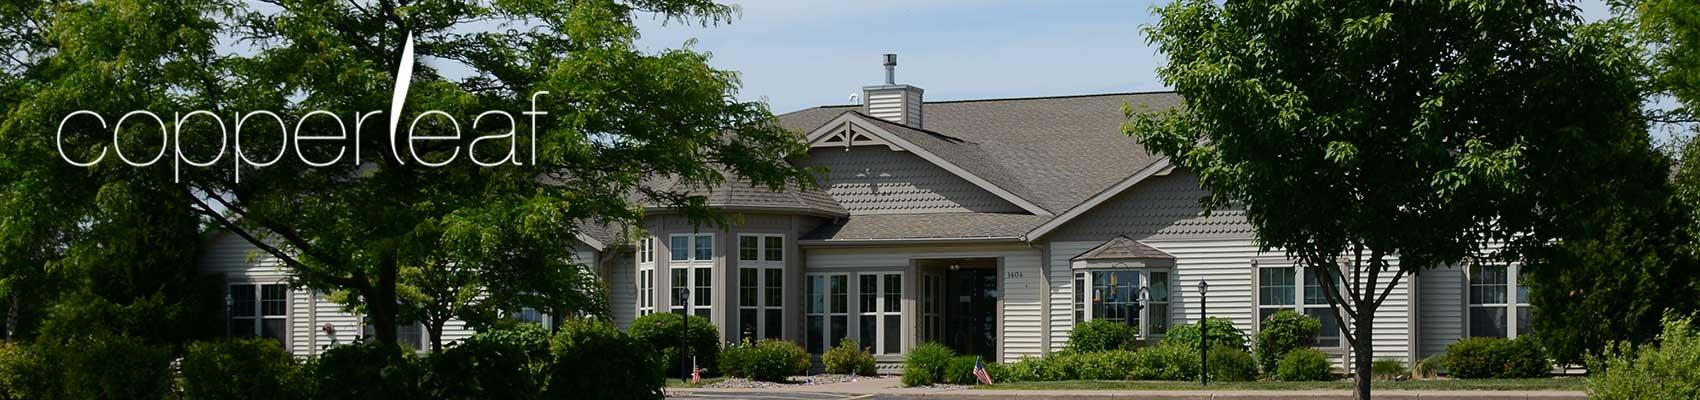 assisted living facilities in Kellner Wisconsin Portage County